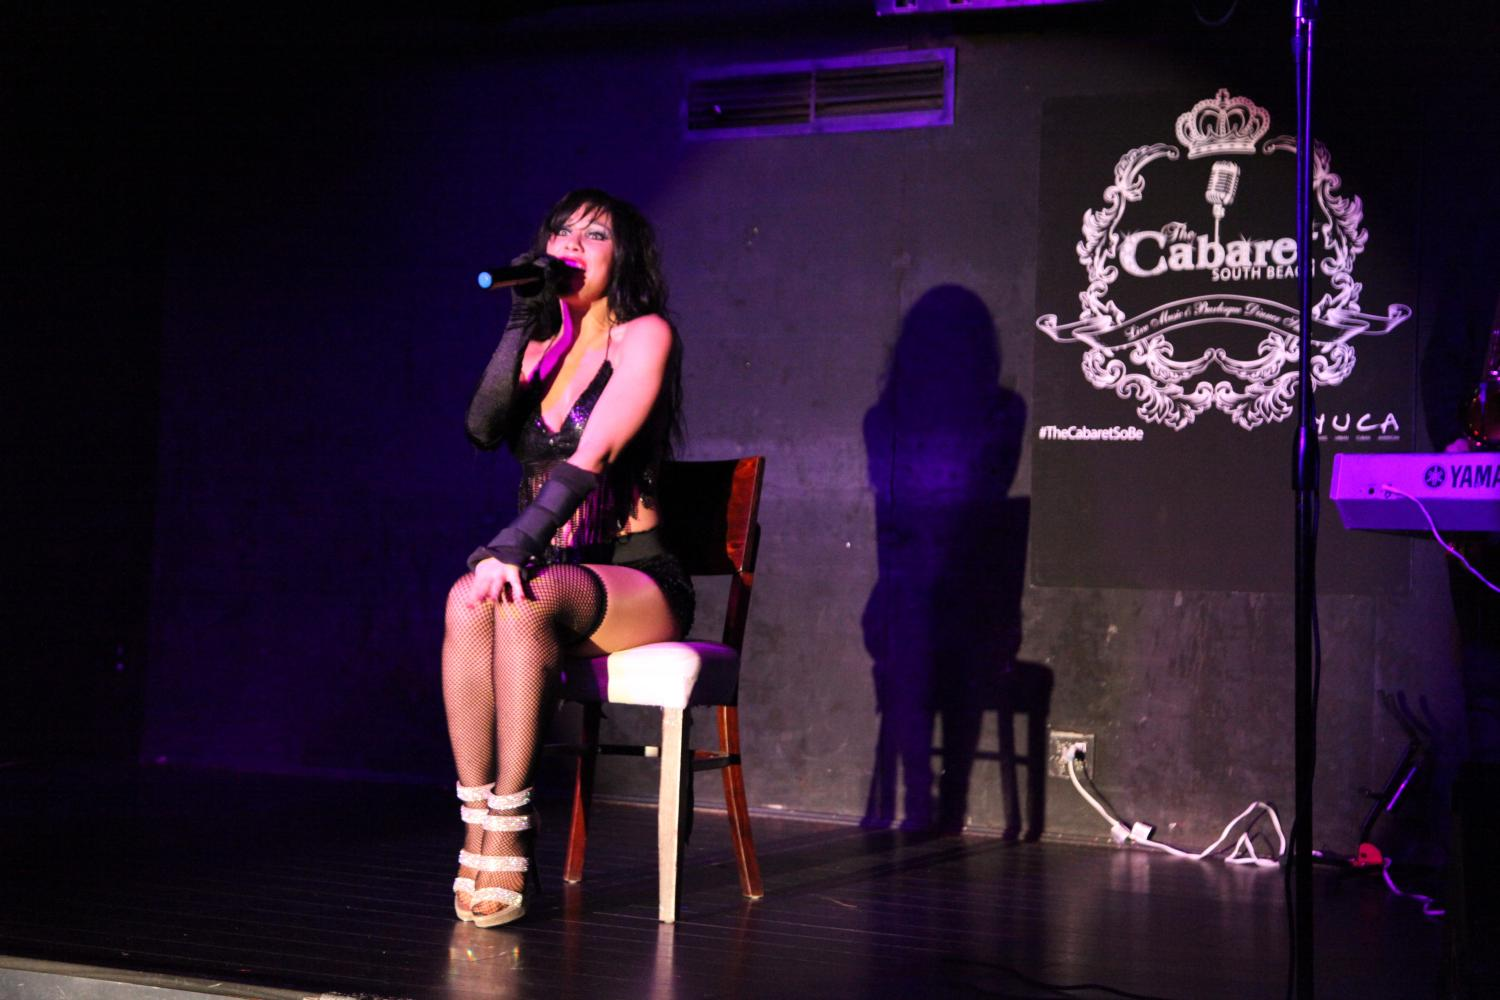 Singing at The Cabaret Supperclub